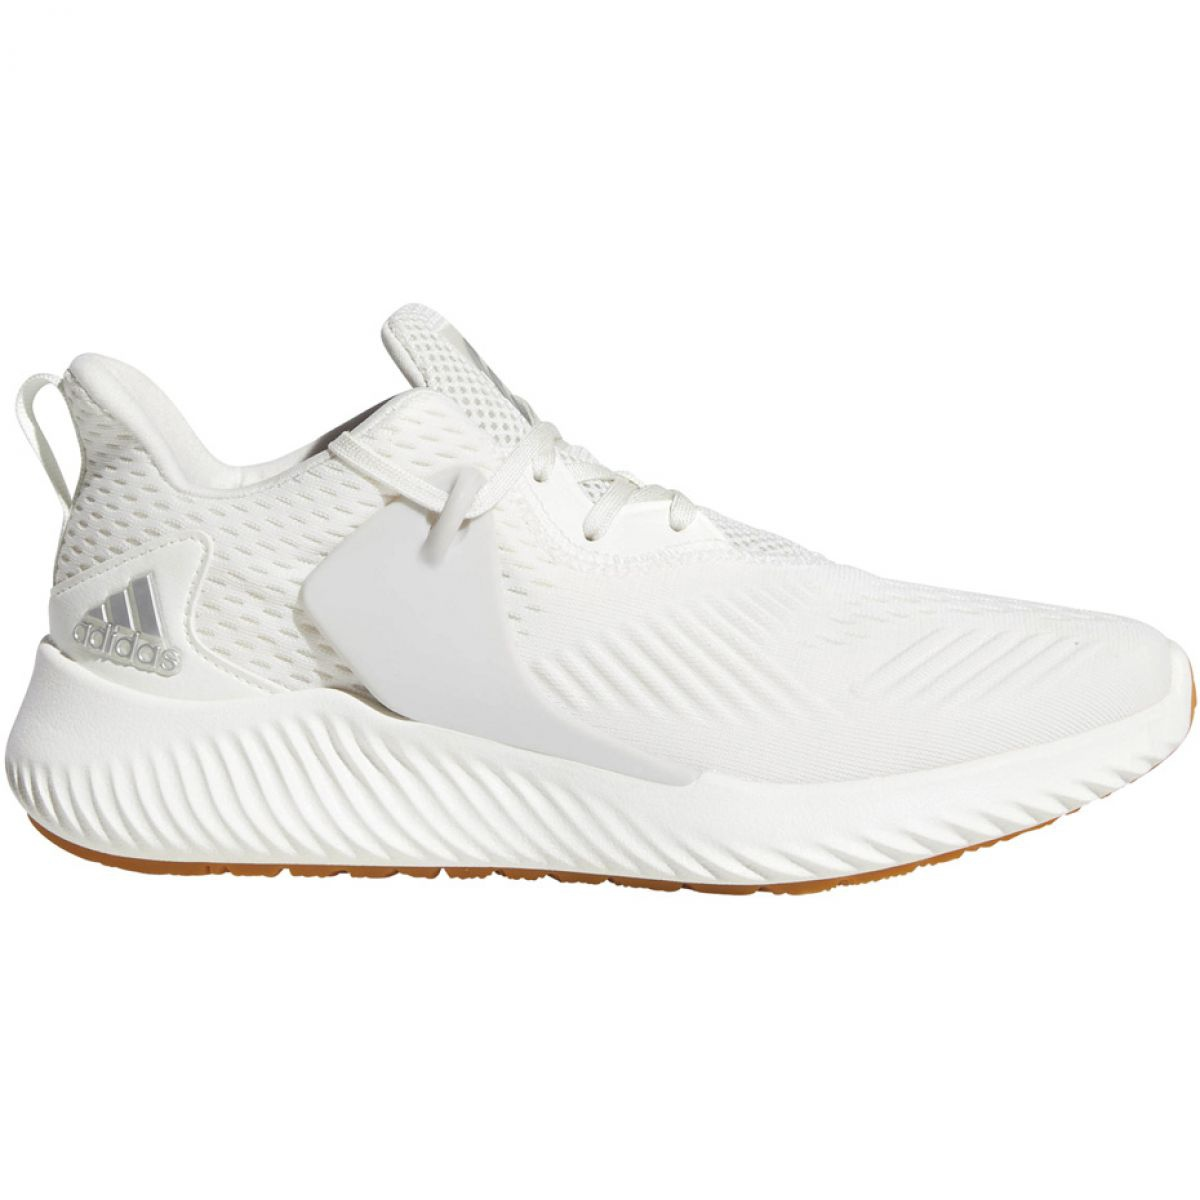 White Running shoes adidas Alphabounce rc 2 W BD7190